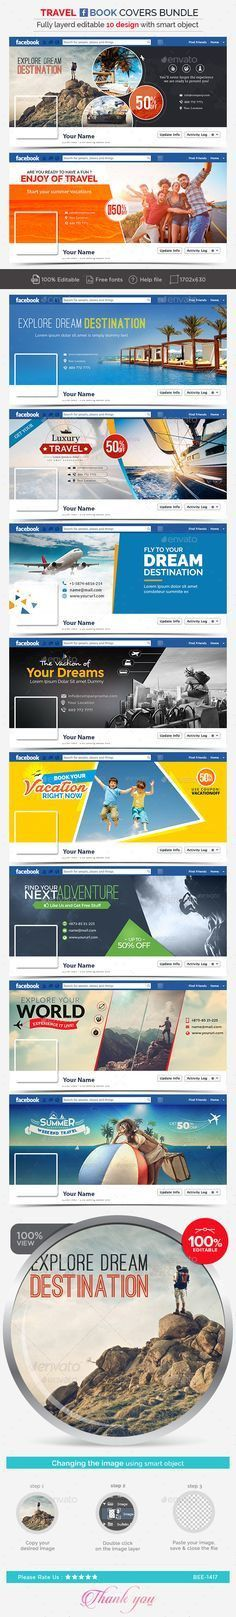 Facebook Cover Bundle | Timeline, Cover design and Template